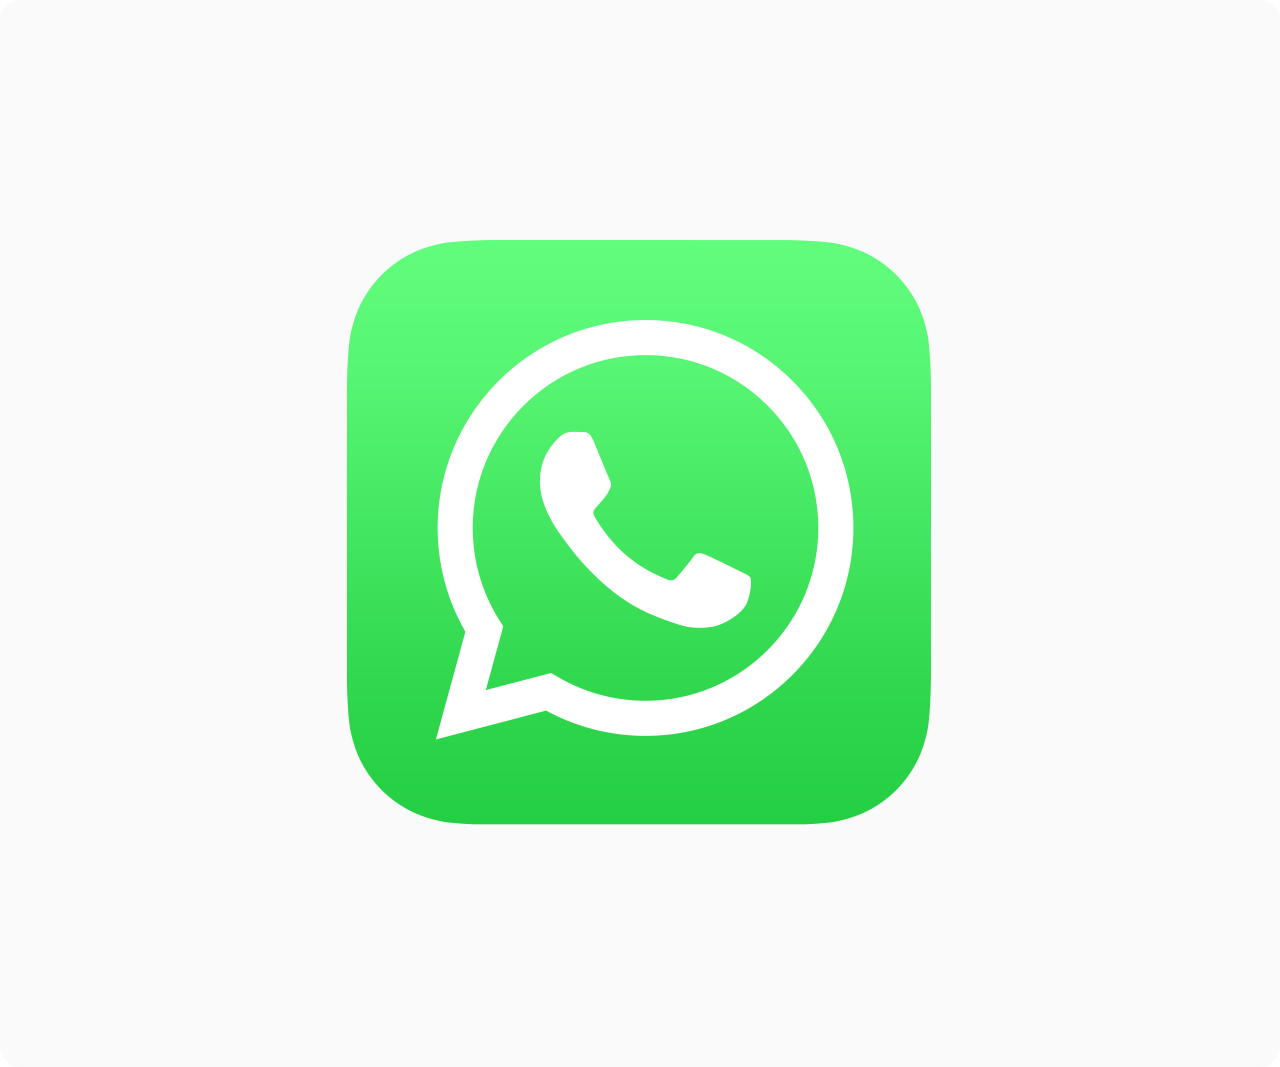 images/whatsaapp.png